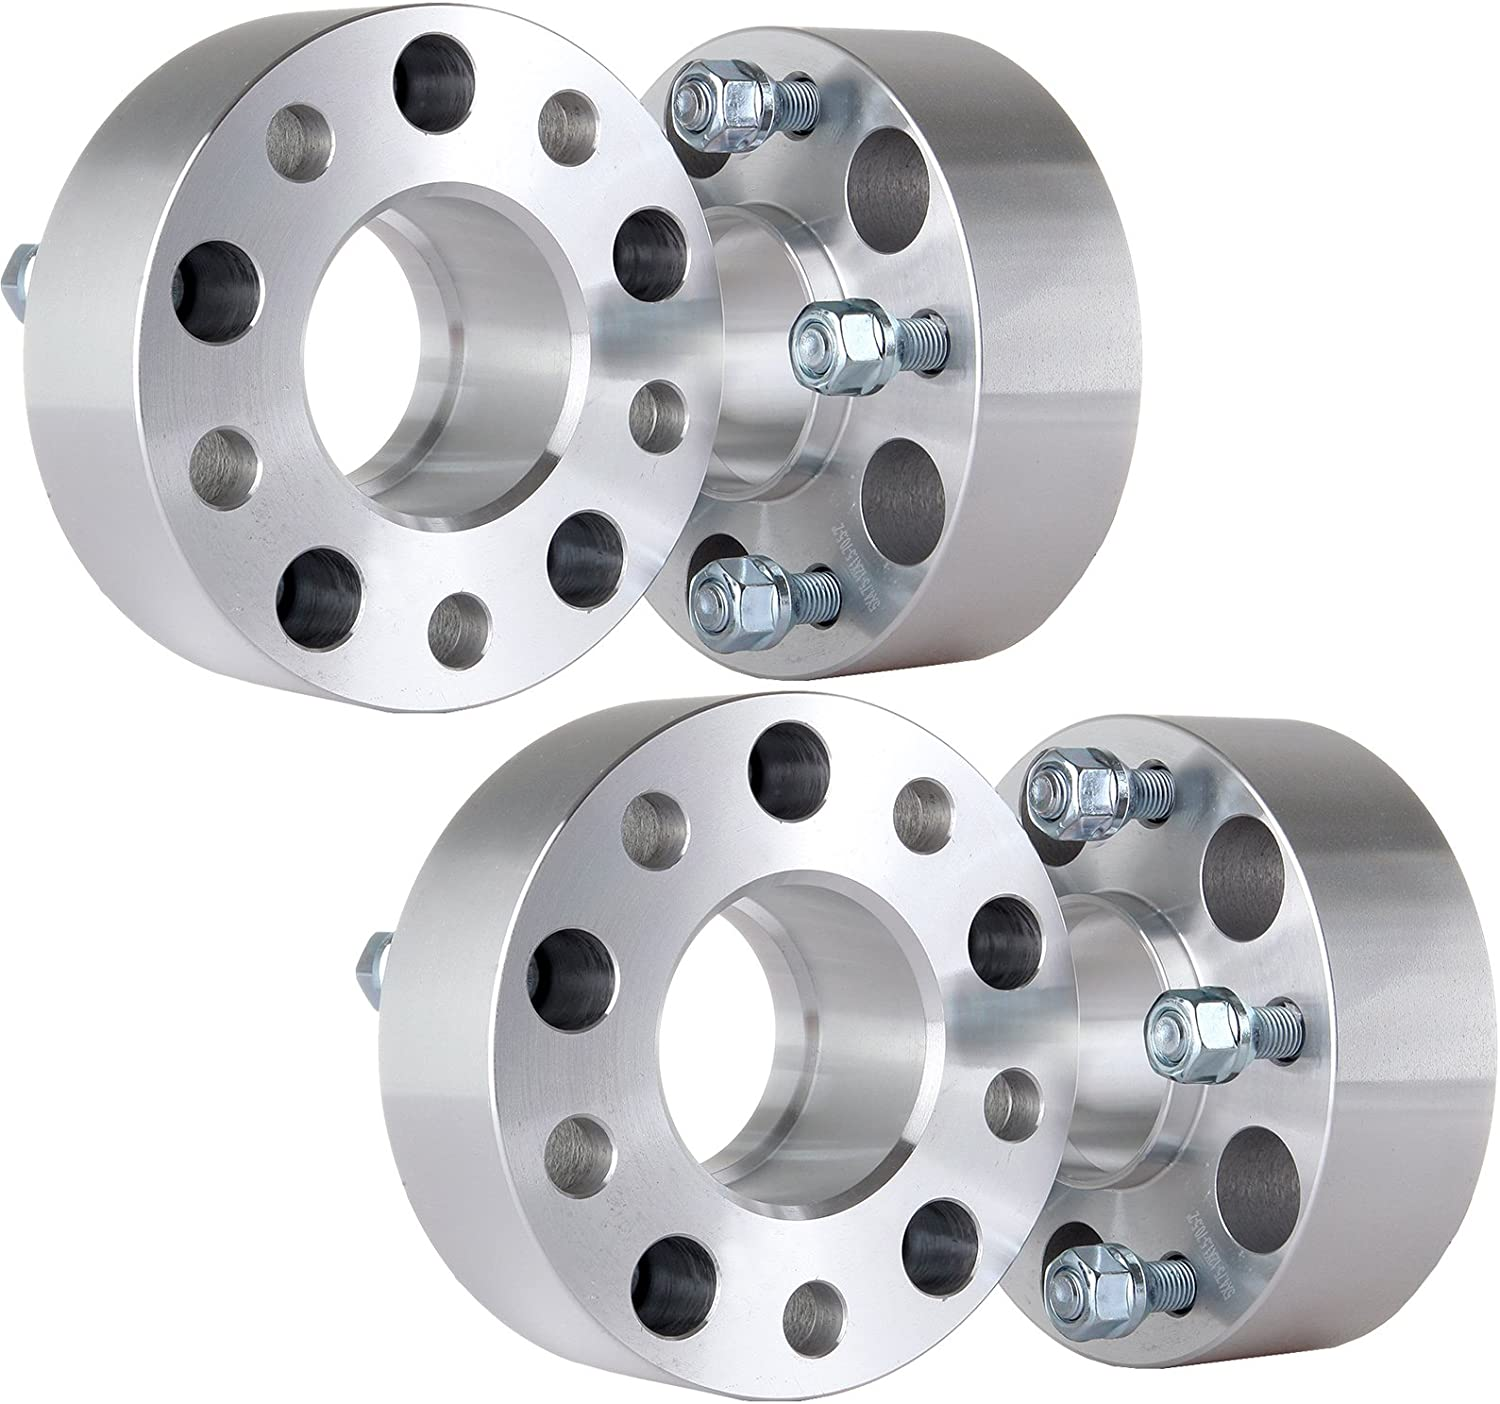 ECCPP 4PCS 2 Hubcentric Wheel Spacers 5x4.75 to 5x4.75 70.5mm fits for Chevrolet Camaro Pontiac GTO GMC S15 GMC Sonoma with Lip M12x1.5